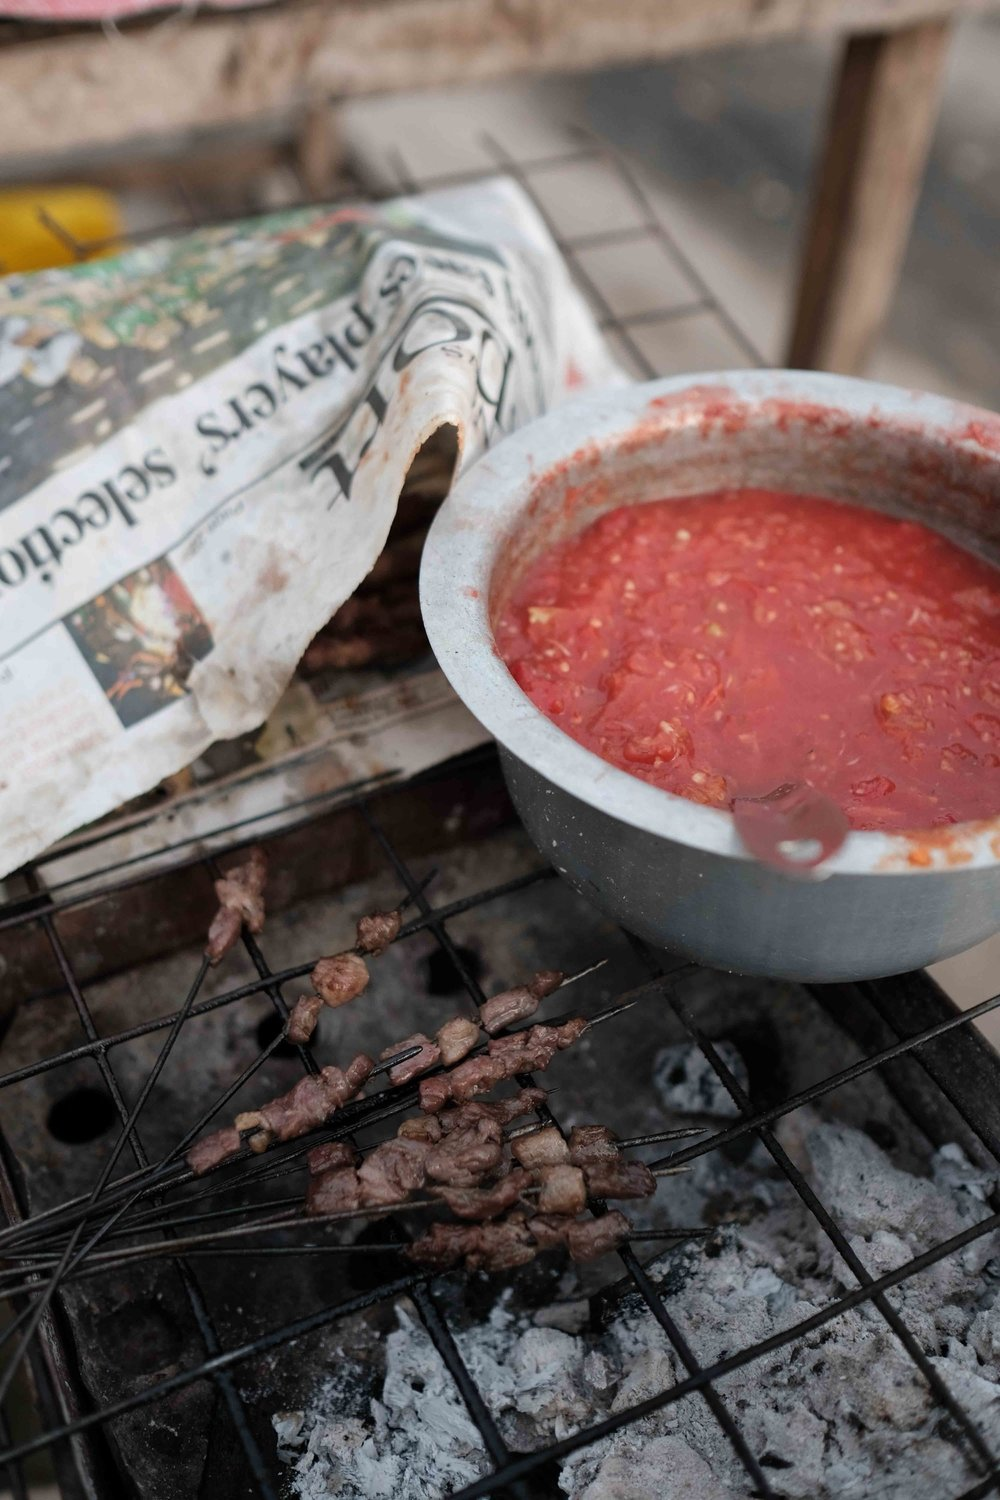 Hot chilly and tomato sauce compliments the grilled meat